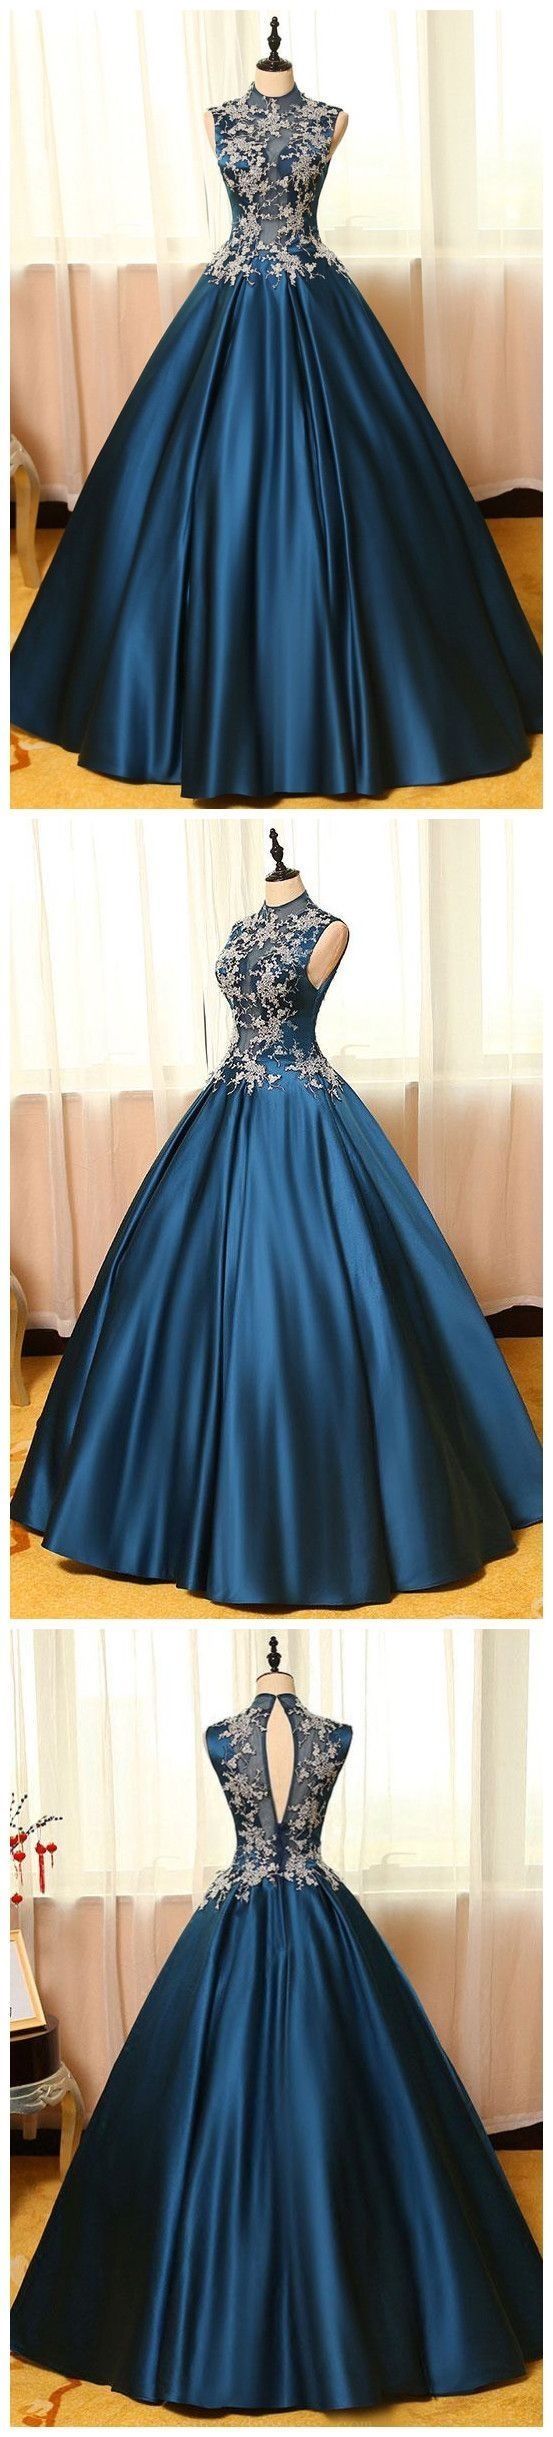 Hot sale colorful blue prom dresses prom dresses high neck